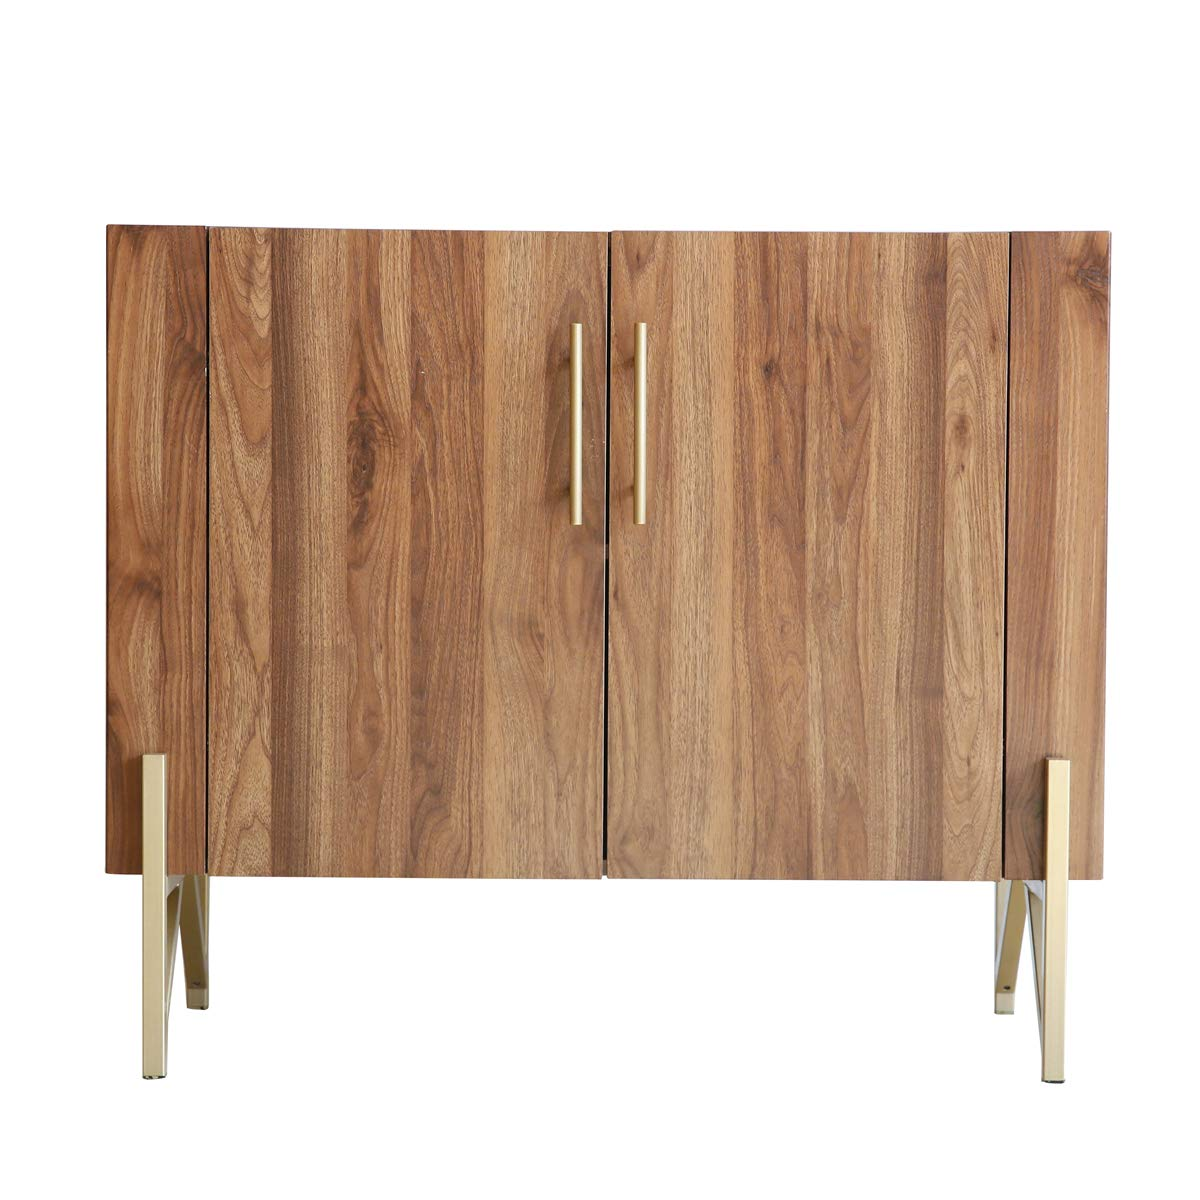 Roomfitters Mid Century Side Board, Dining Room Server, Credenza, Side Board, Buffet, Elegant Walnut Finish with Gold Legs by Roomfitters (Image #2)